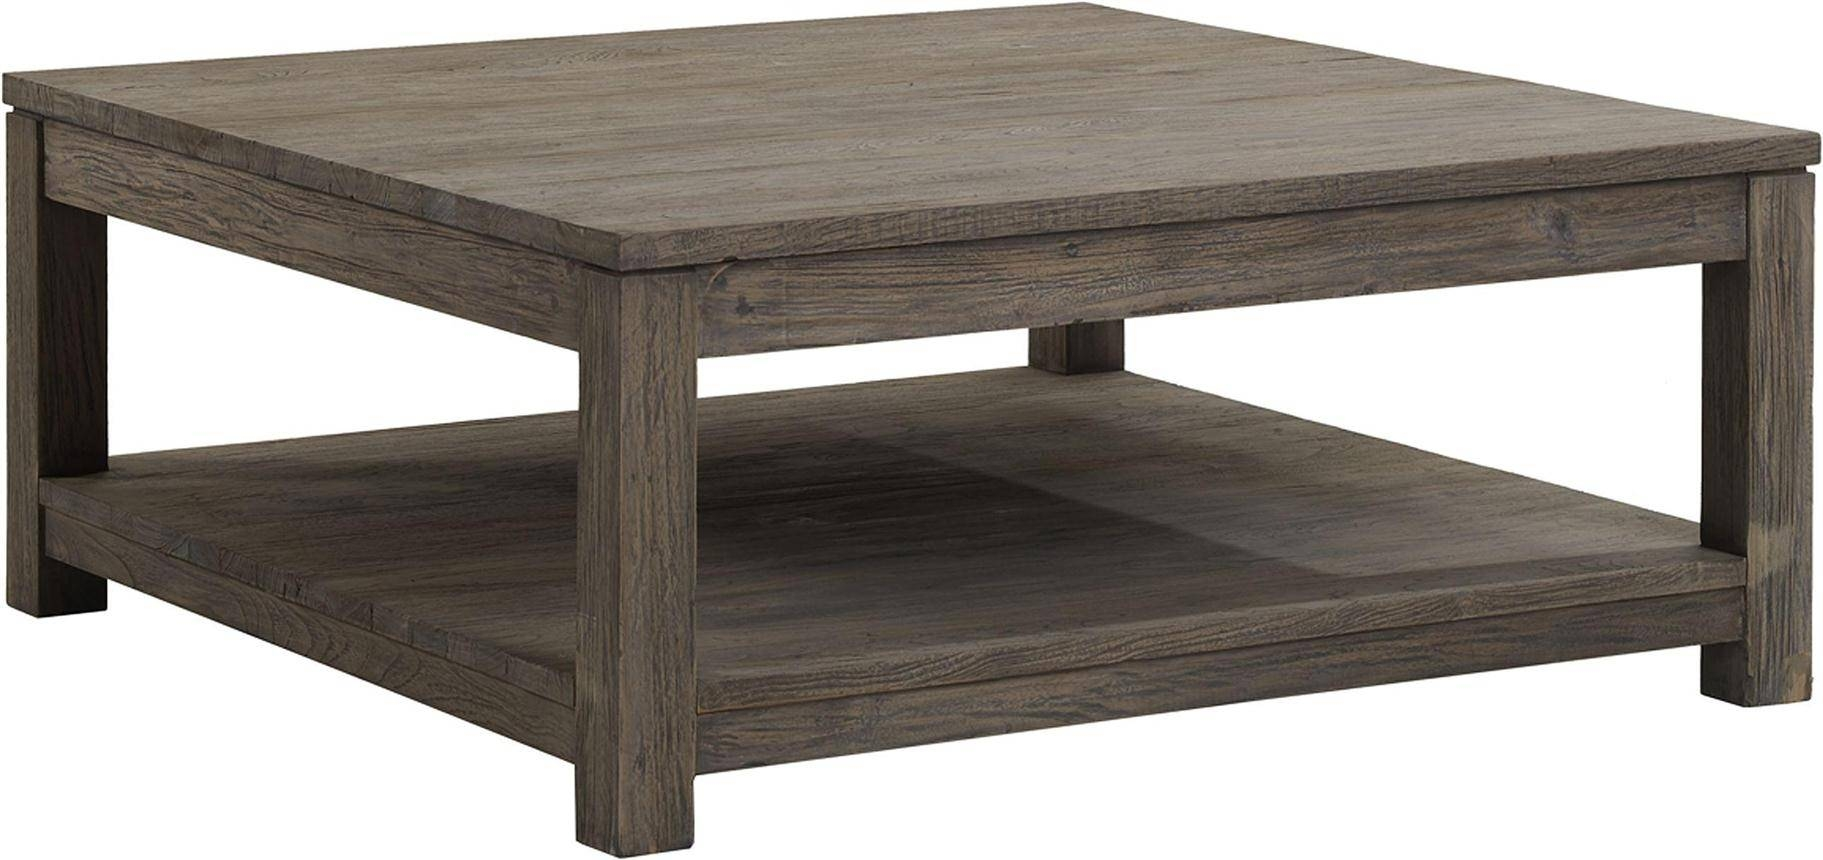 Oversized Square Wood Coffee Table | Coffee Tables Decoration pertaining to Hardwood Coffee Tables With Storage (Image 22 of 30)